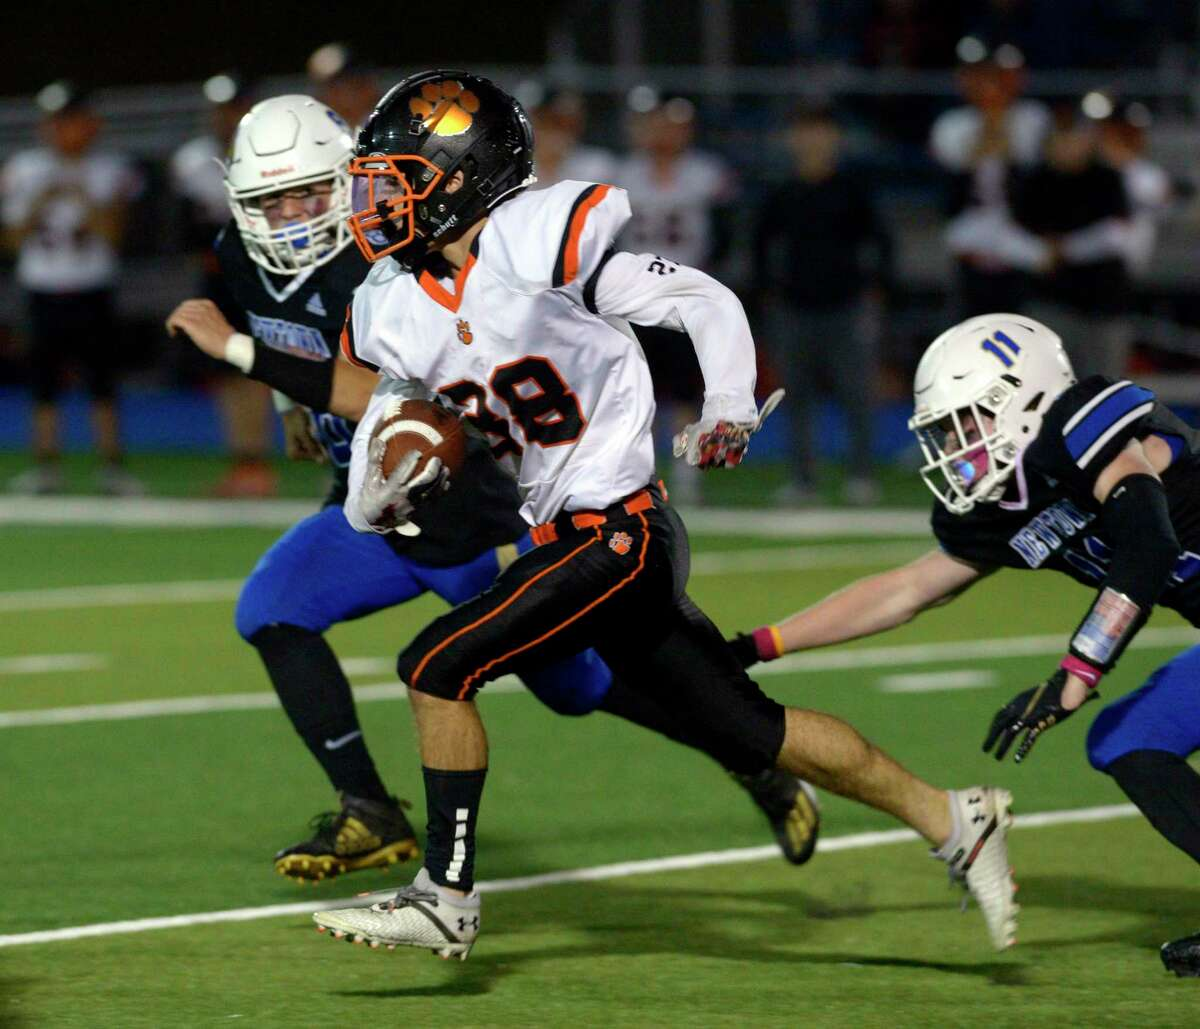 Ridgefield's Matthew Shepard (38) cuts through Newtown's Chris Stowell (8) and Andrew Jacobs (11) for a big gain in the high school football game between Ridgefield and Newtown high schools. Friday night, October 1, 2021, at Newtown High School, Newtown, Conn.